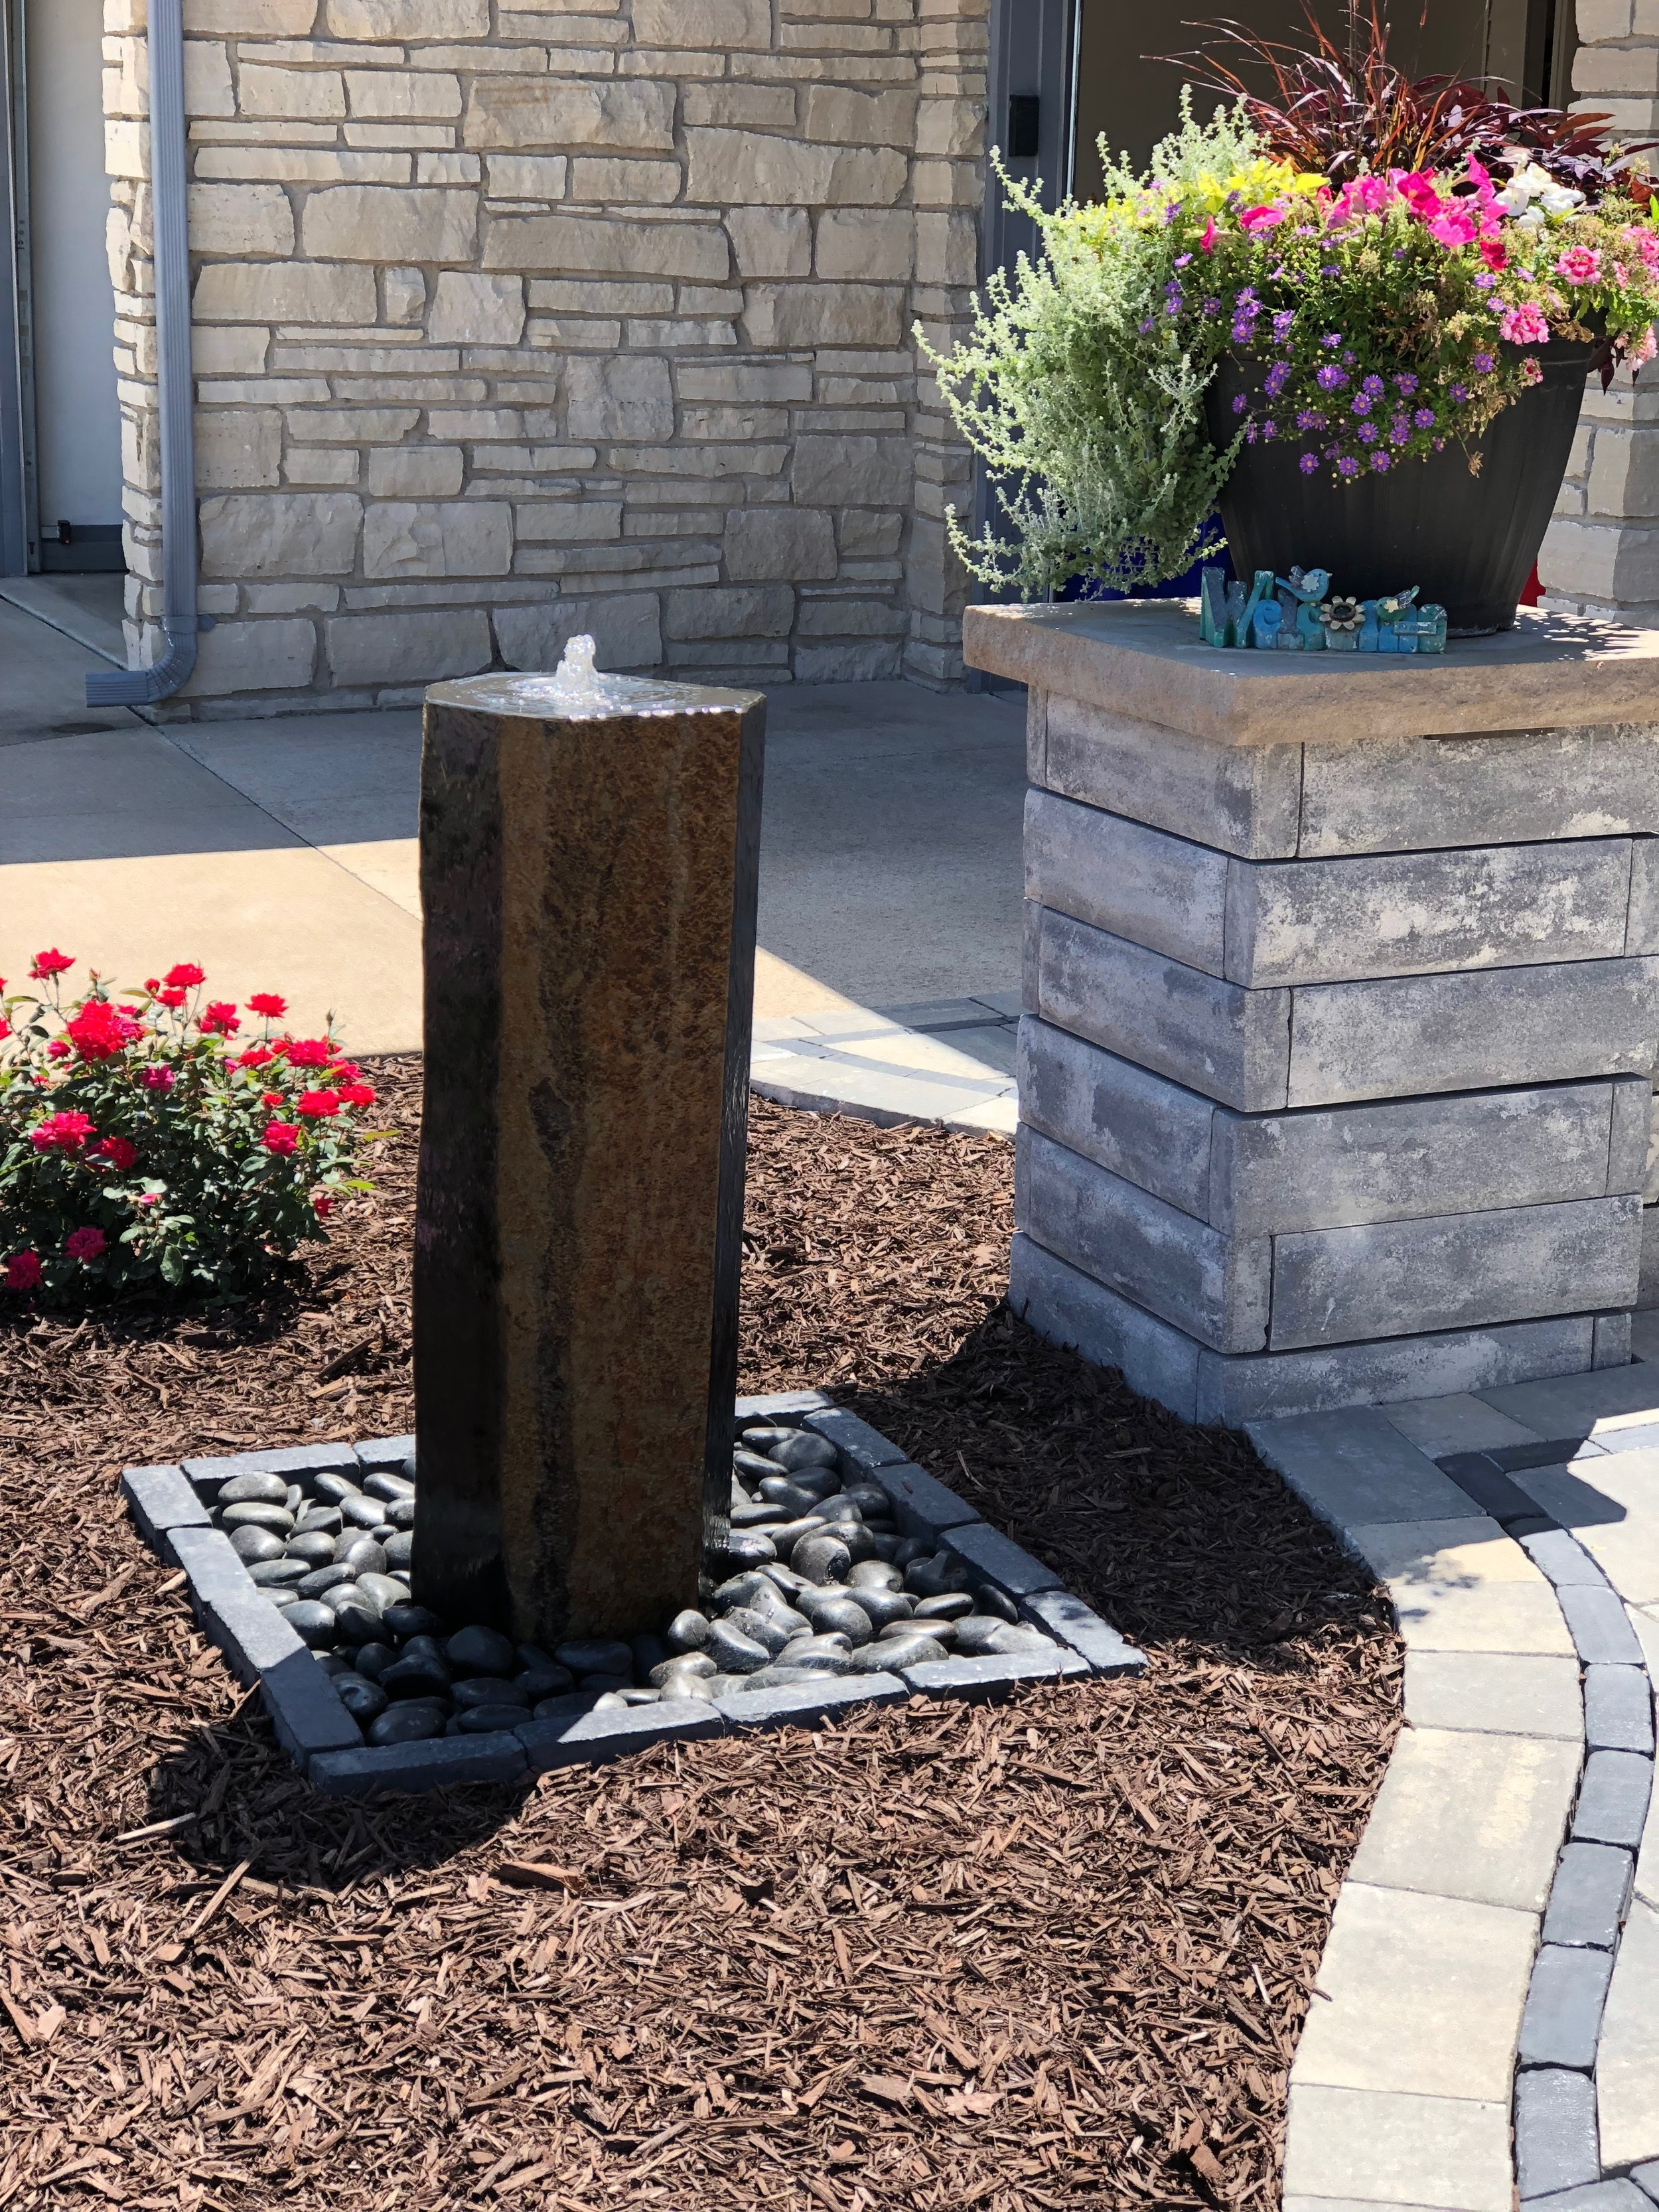 Vosters Landscaping | Plants | Shrubs | Landscape design | Ambiance | Water Feature